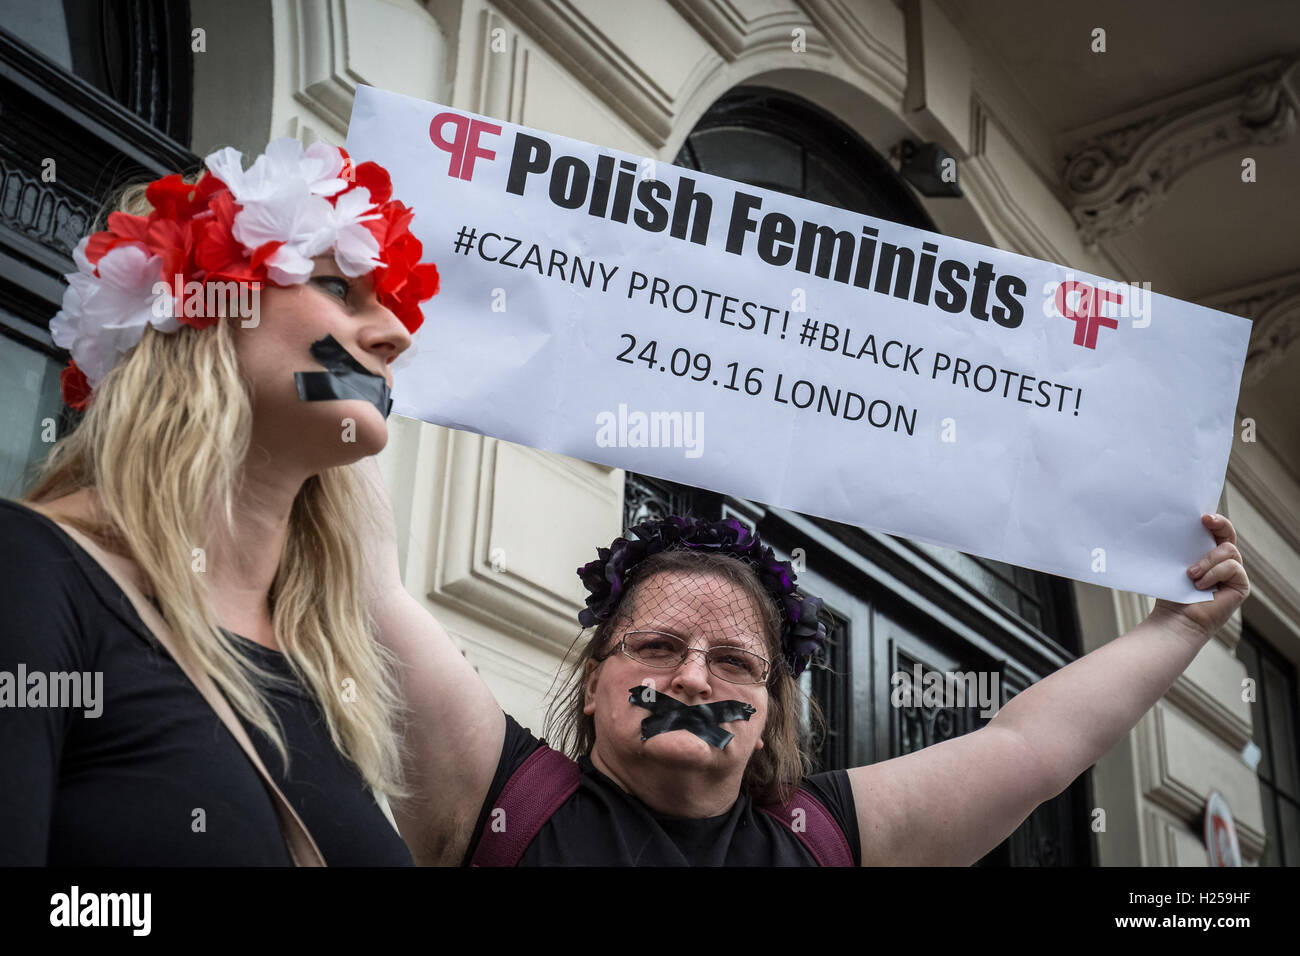 London, UK. 24th September, 2016. Protest outside the Polish Embassy in London against Poland's right-wing lawmakers Stock Photo